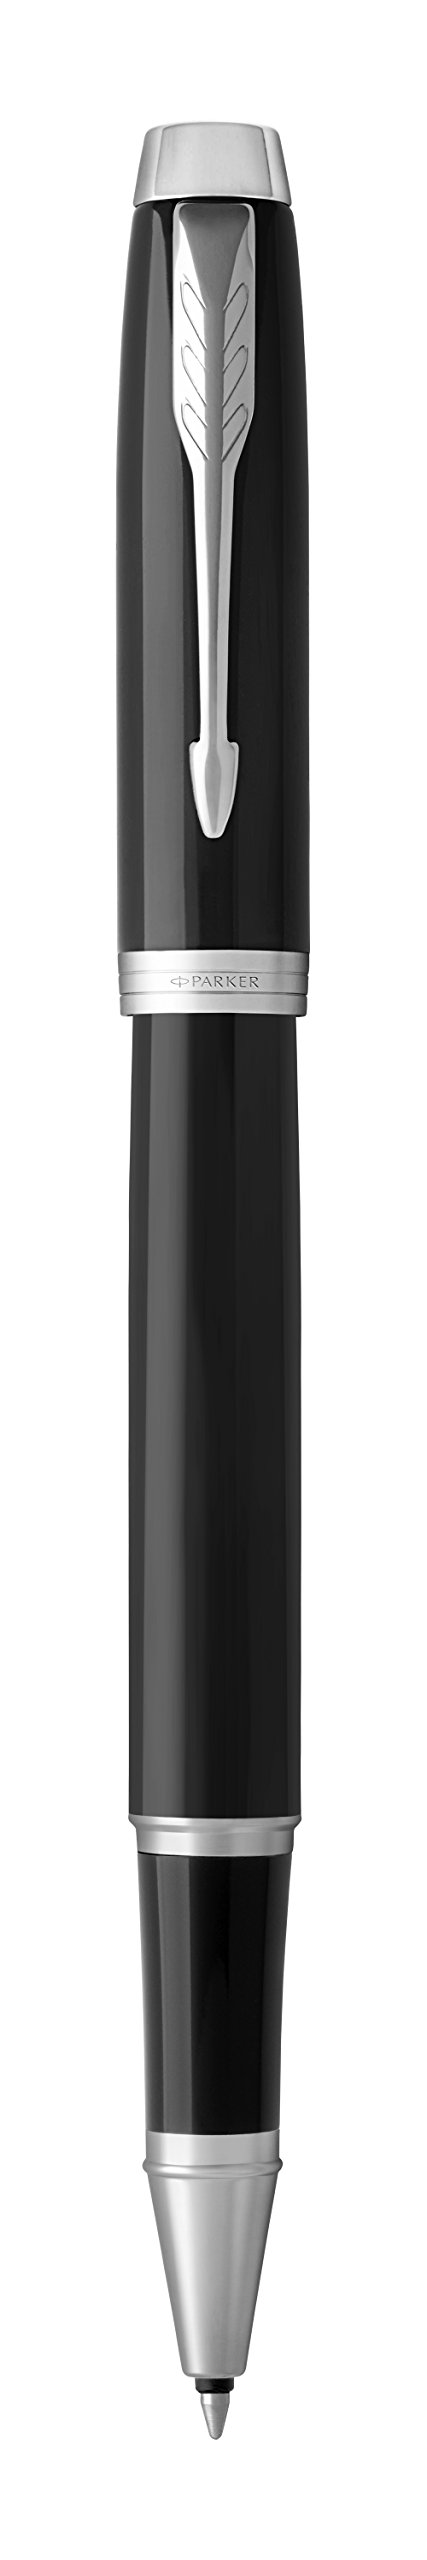 Parker IM Rollerball Pen, Black Lacquer Chrome Trim with Fine Point Black Ink Refill (1975540) by Parker (Image #3)